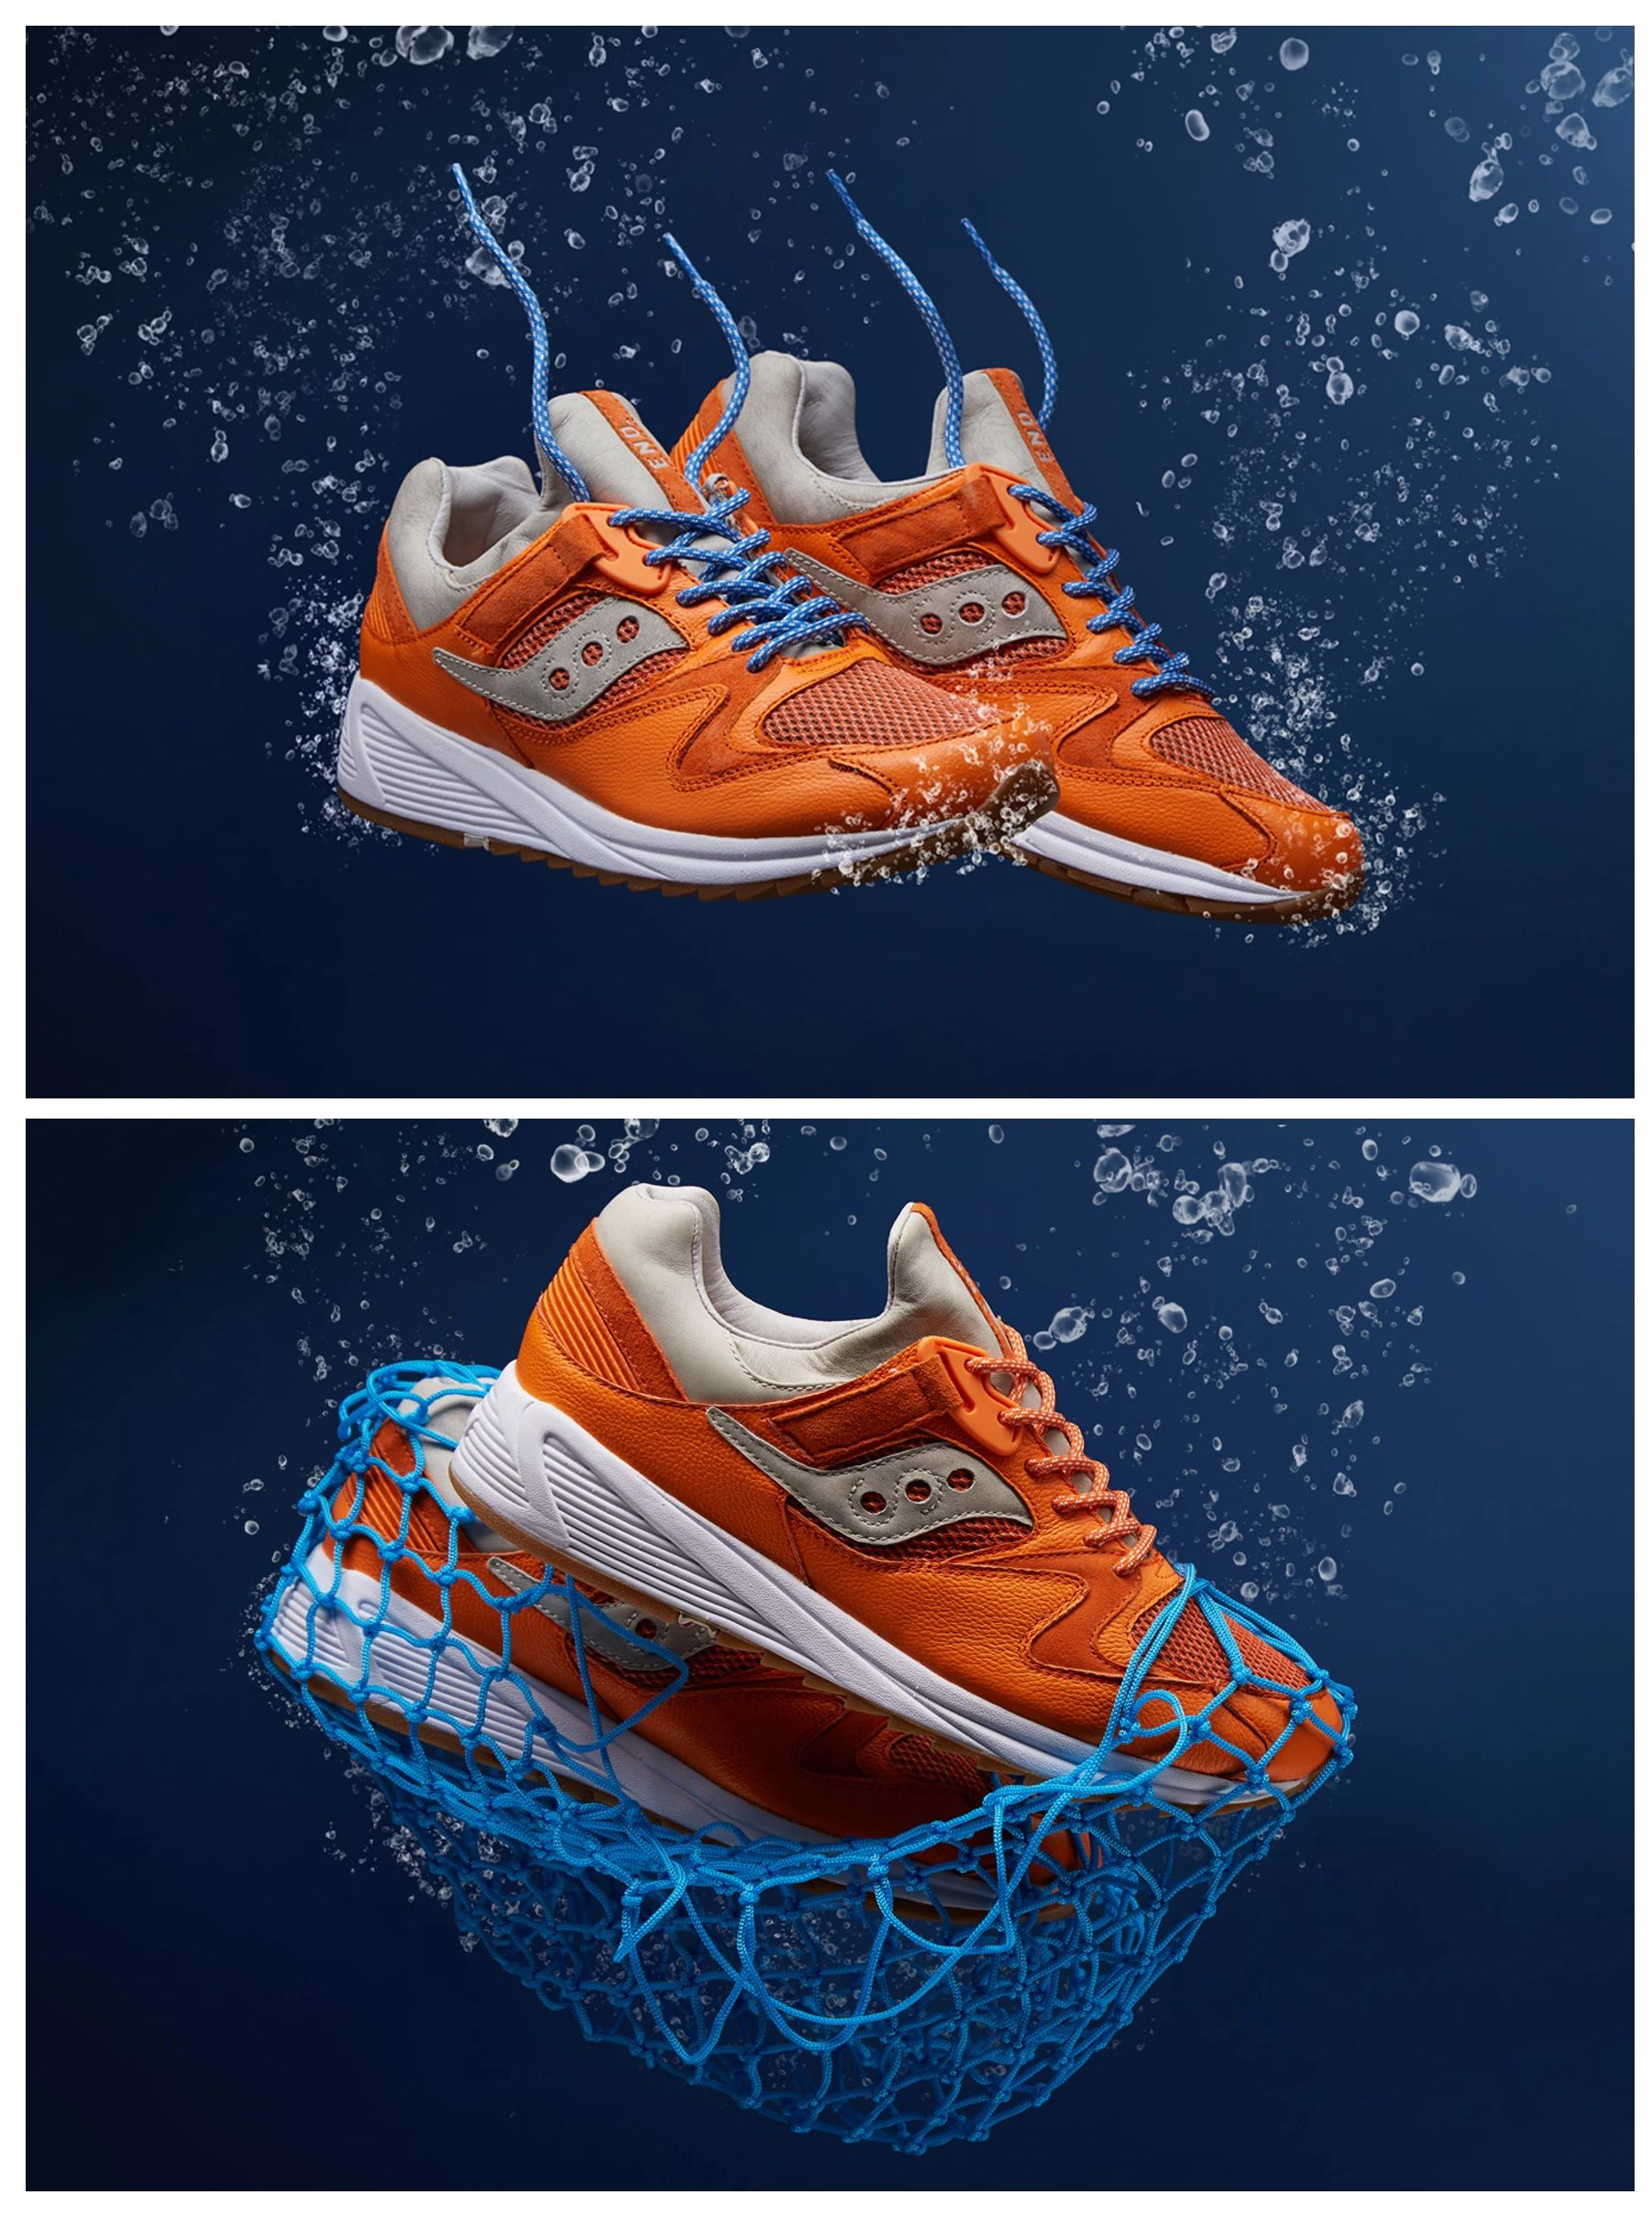 d2493b8a0802 END x Saucony Grid 8500